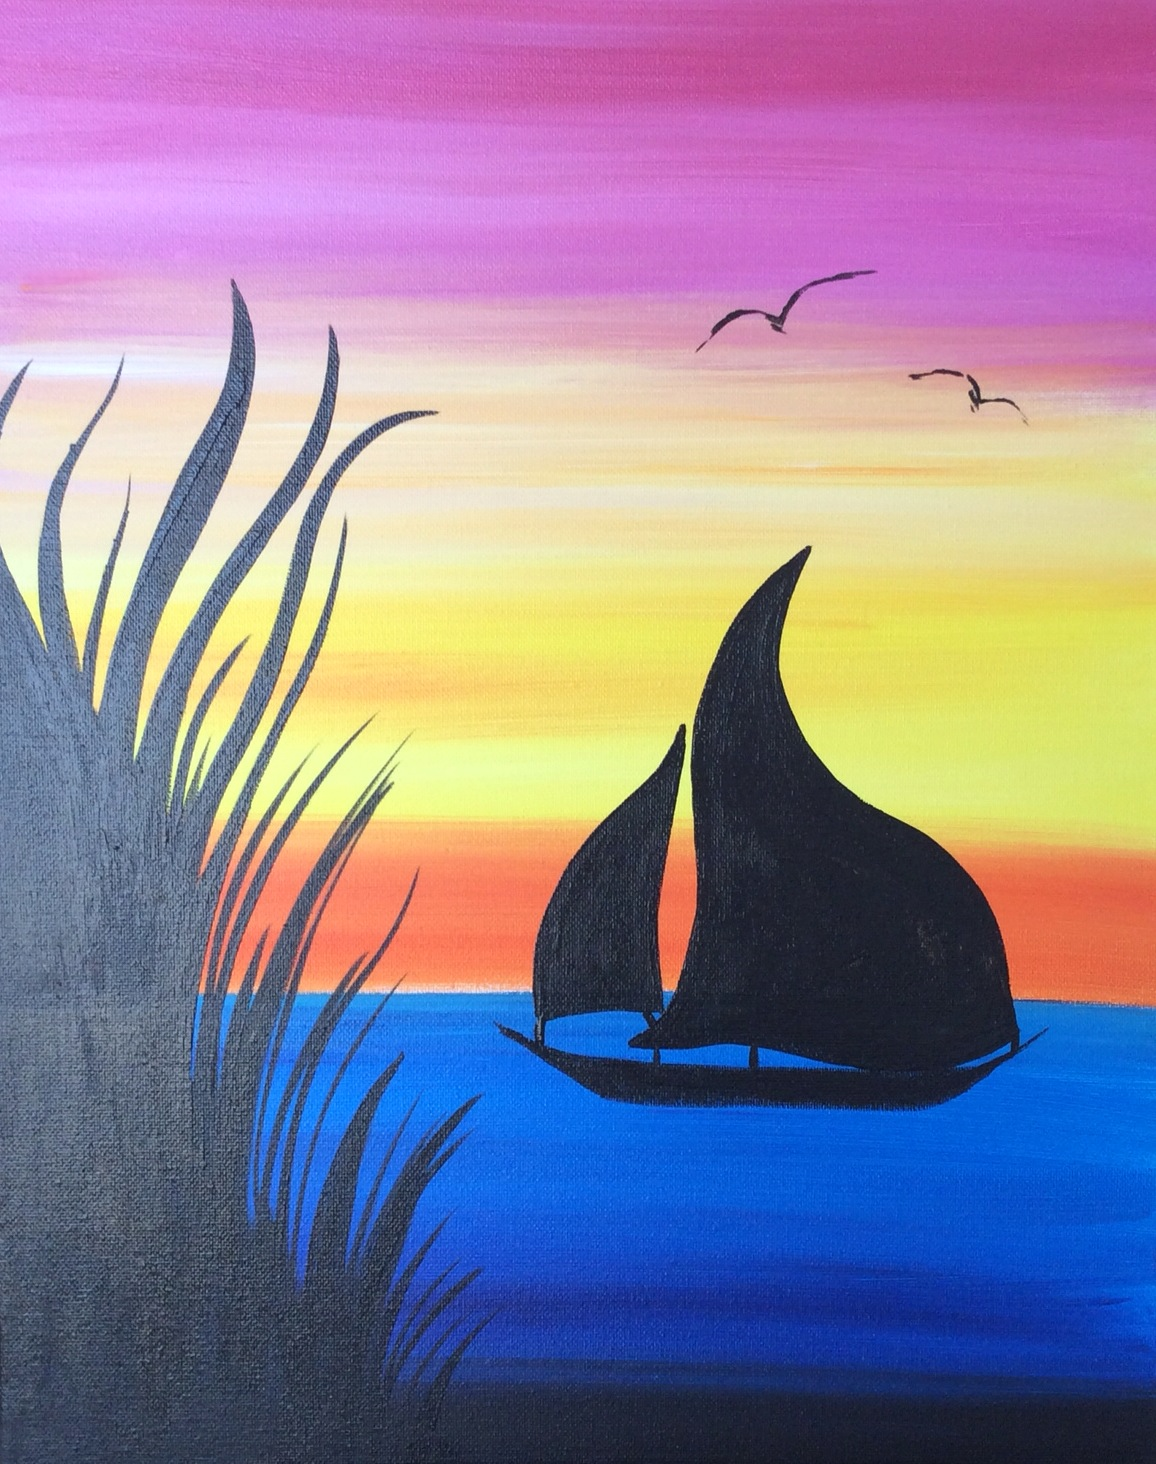 Sailboat on Sunset - 2 Hours